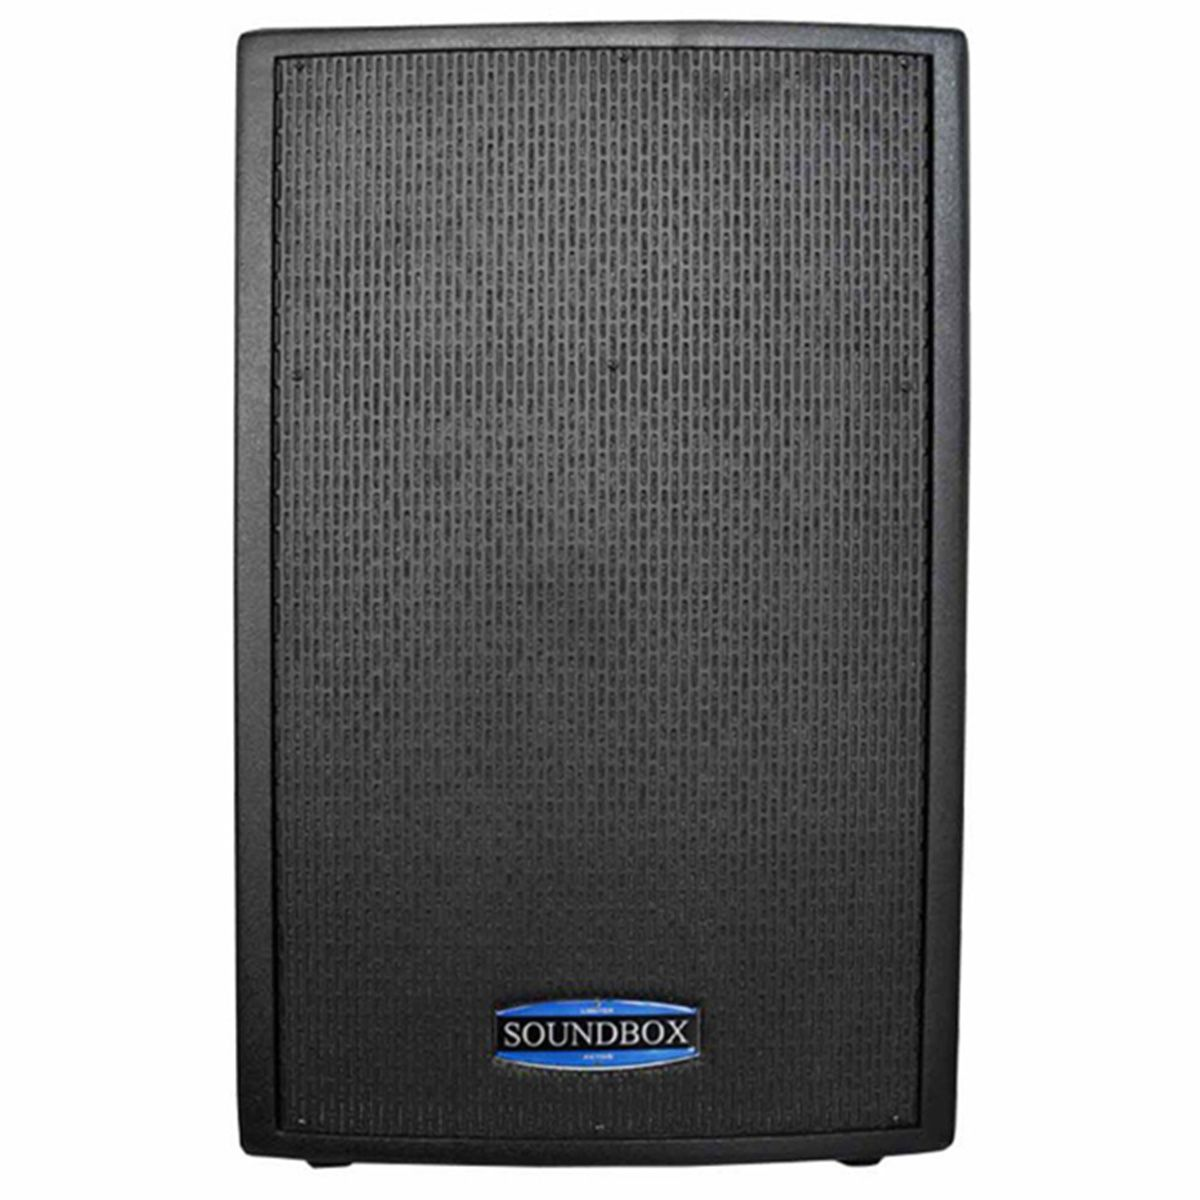 Caixa Acústica Ativa MS 12 Bi-Amplificada / 1000W - Soundbox MS12  - RS Som e Luz!